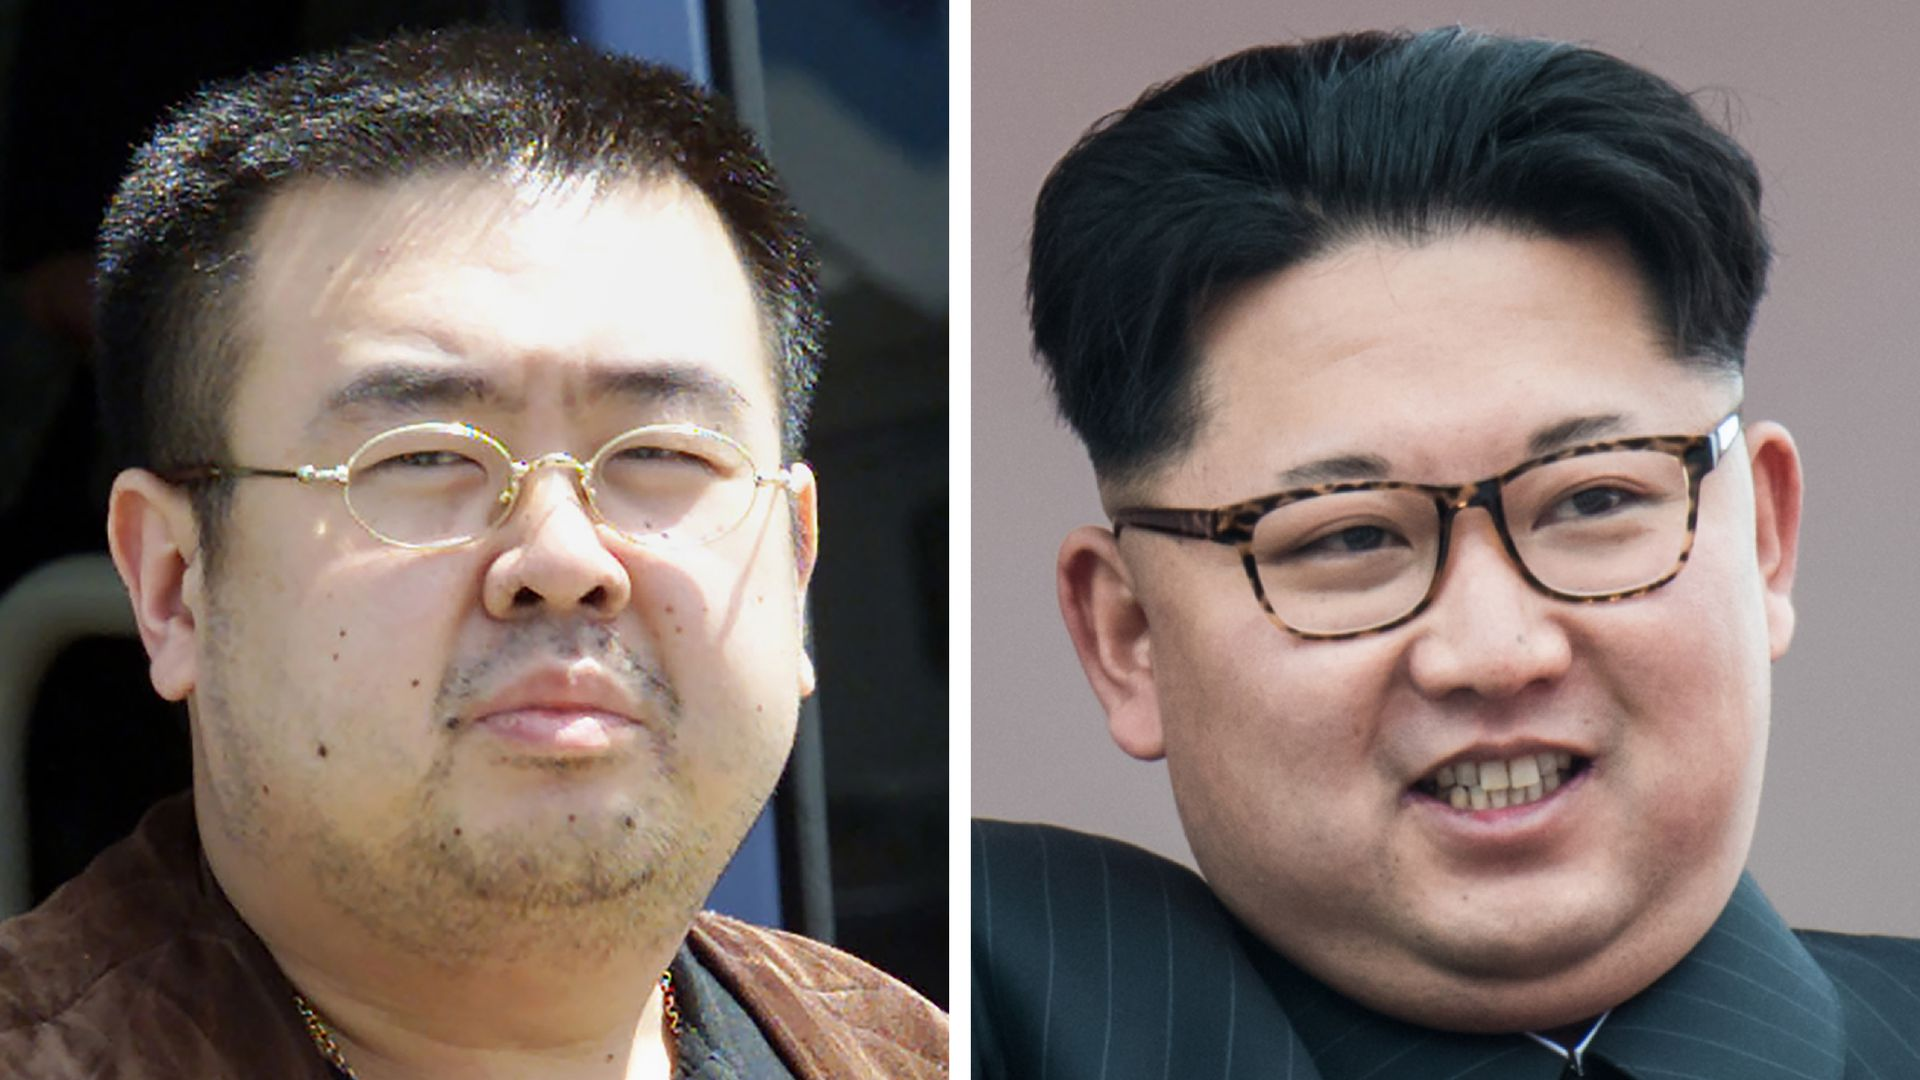 This image is a split screen of Kim Jong Nam and his brother, Kim Jong-un